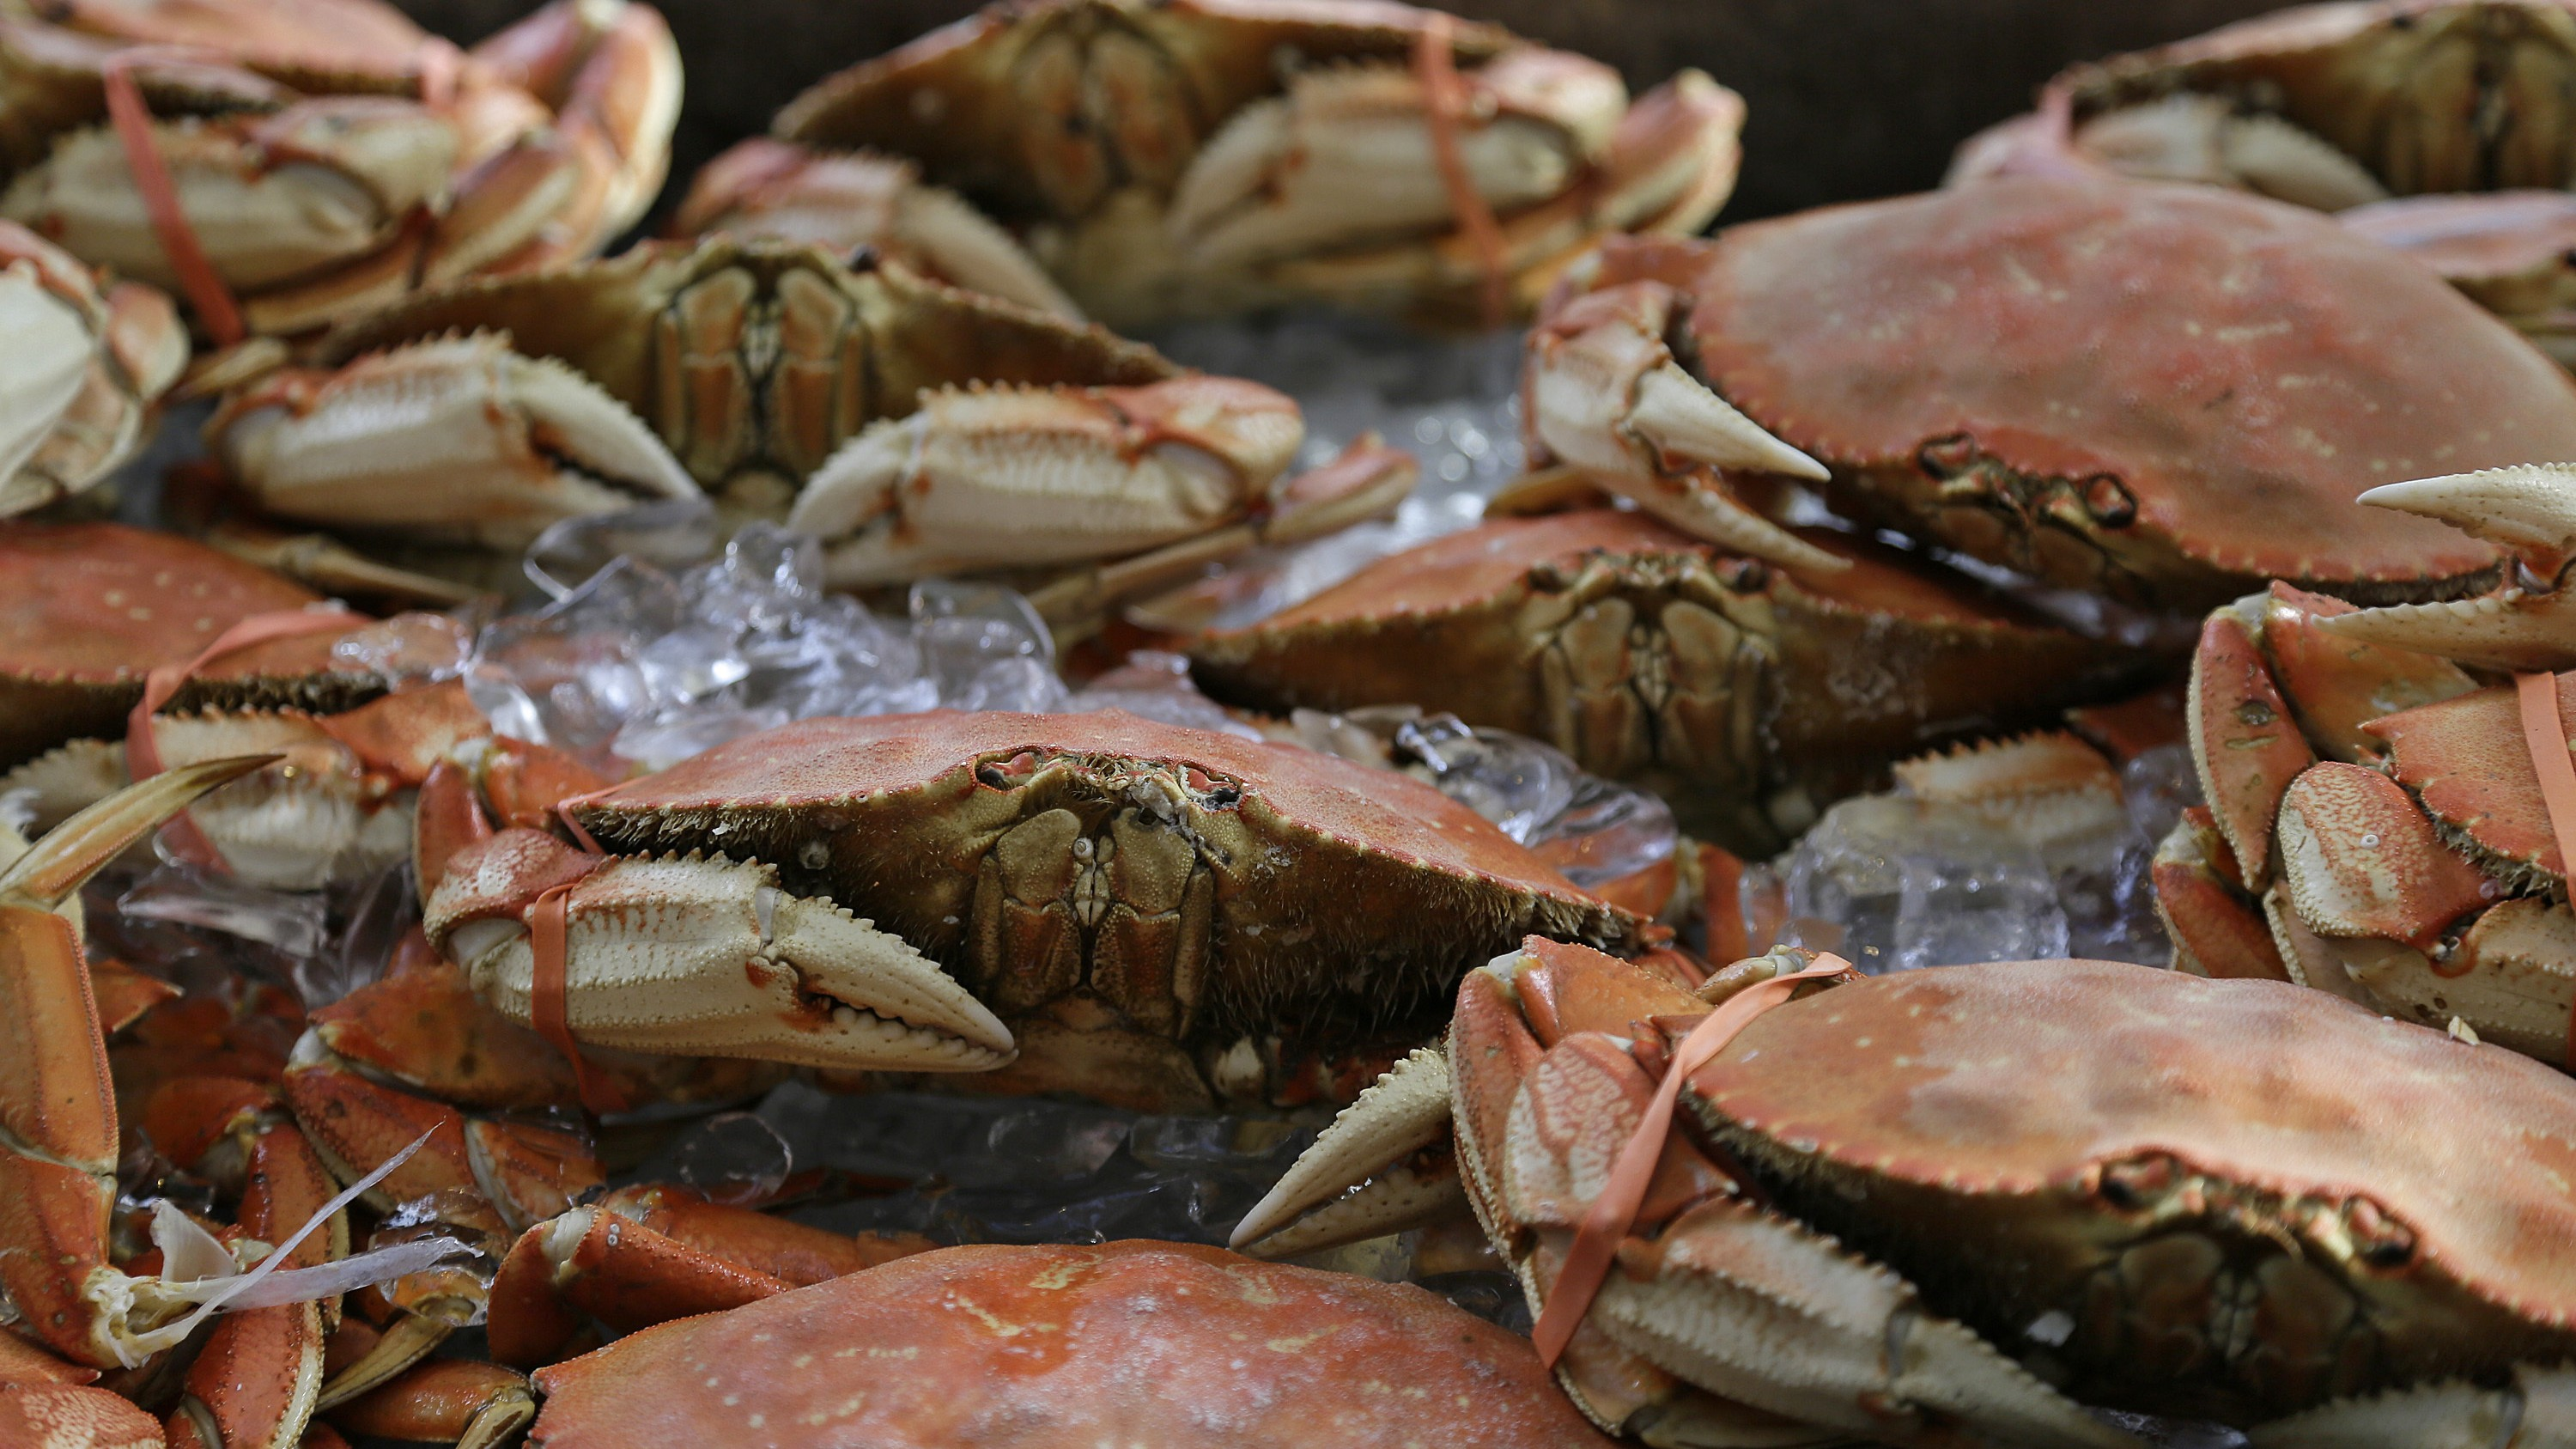 California's Fishing Industry Feels the Pinch From Toxic Crabs